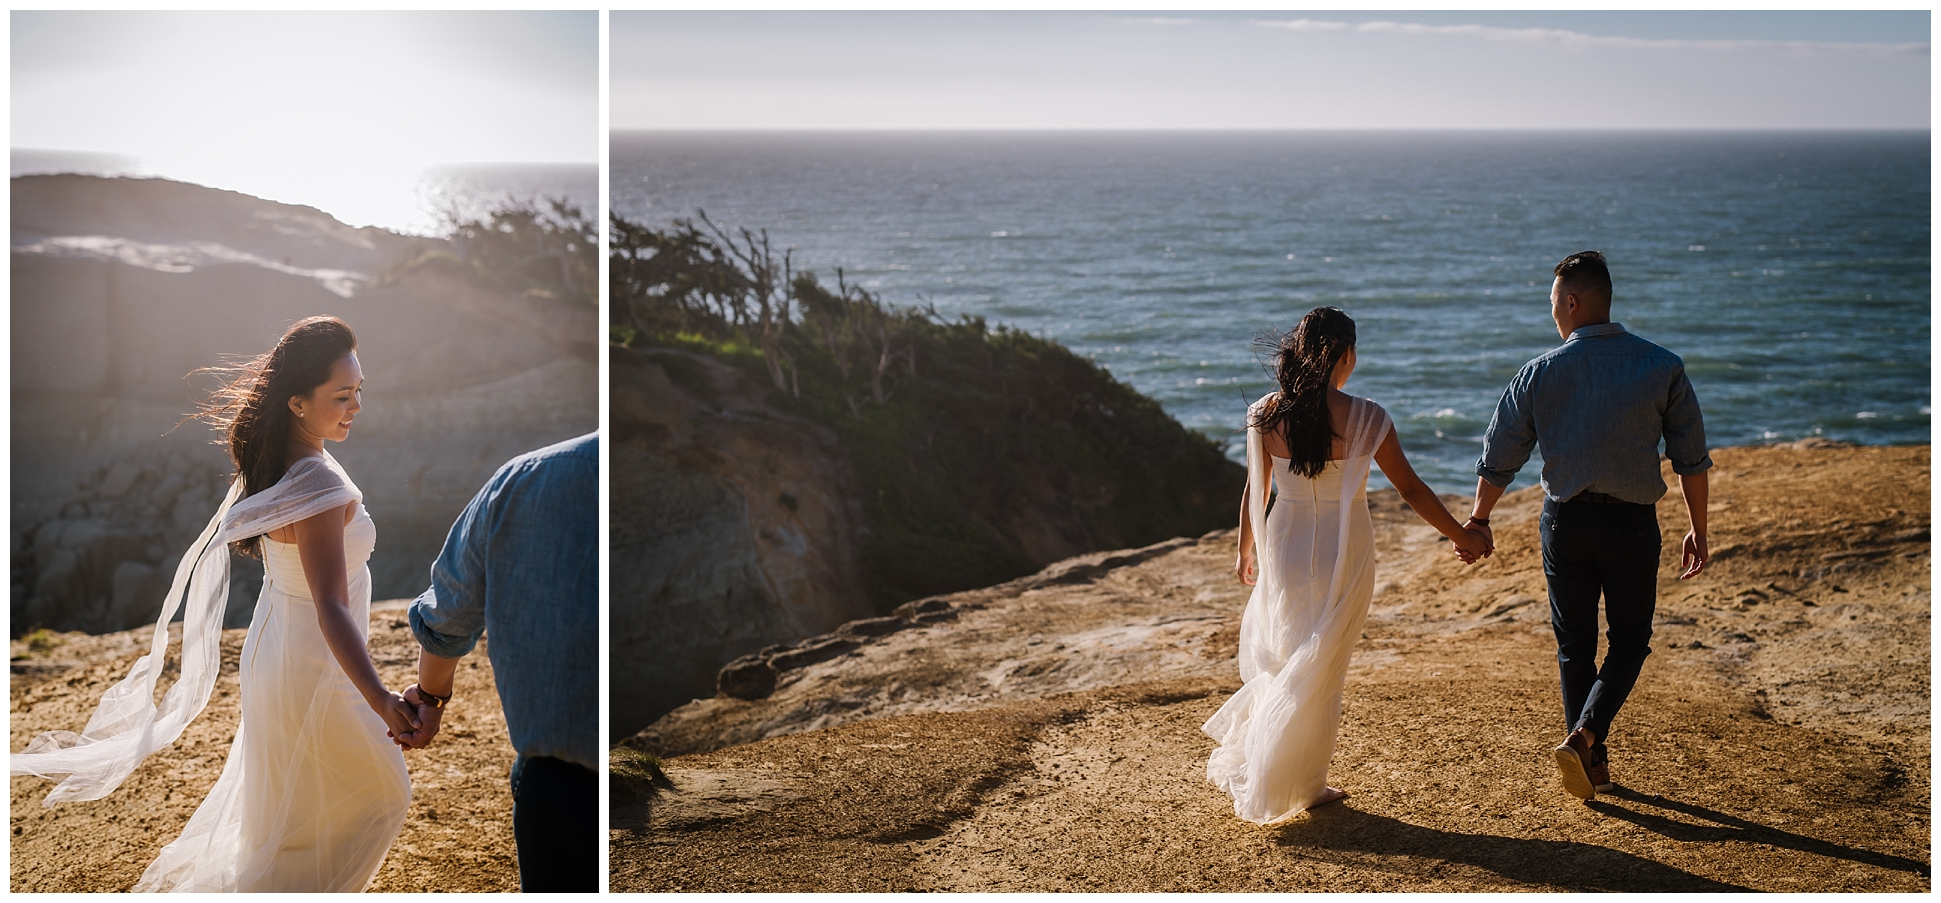 Cape-kiwanda-bridal-portrait-destination-wedding-photographer_0021.jpg